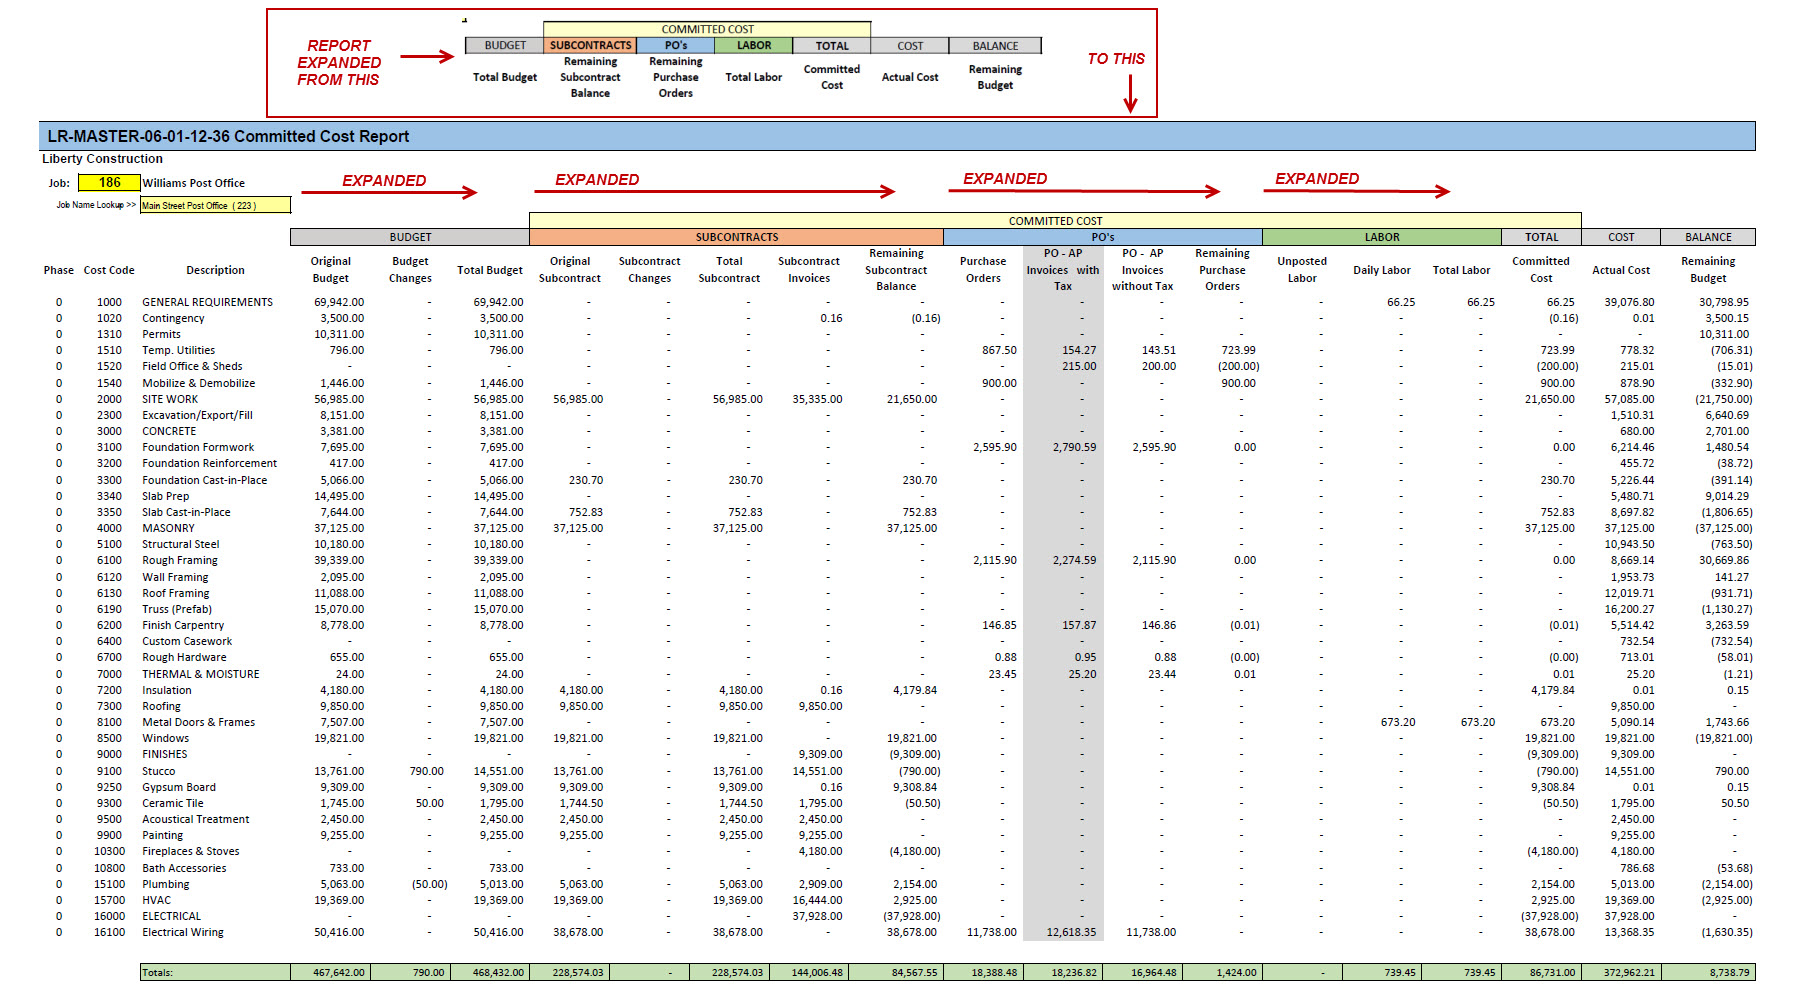 LR-06-01-12-36T Committed Cost Report-EXPANDED PLUS